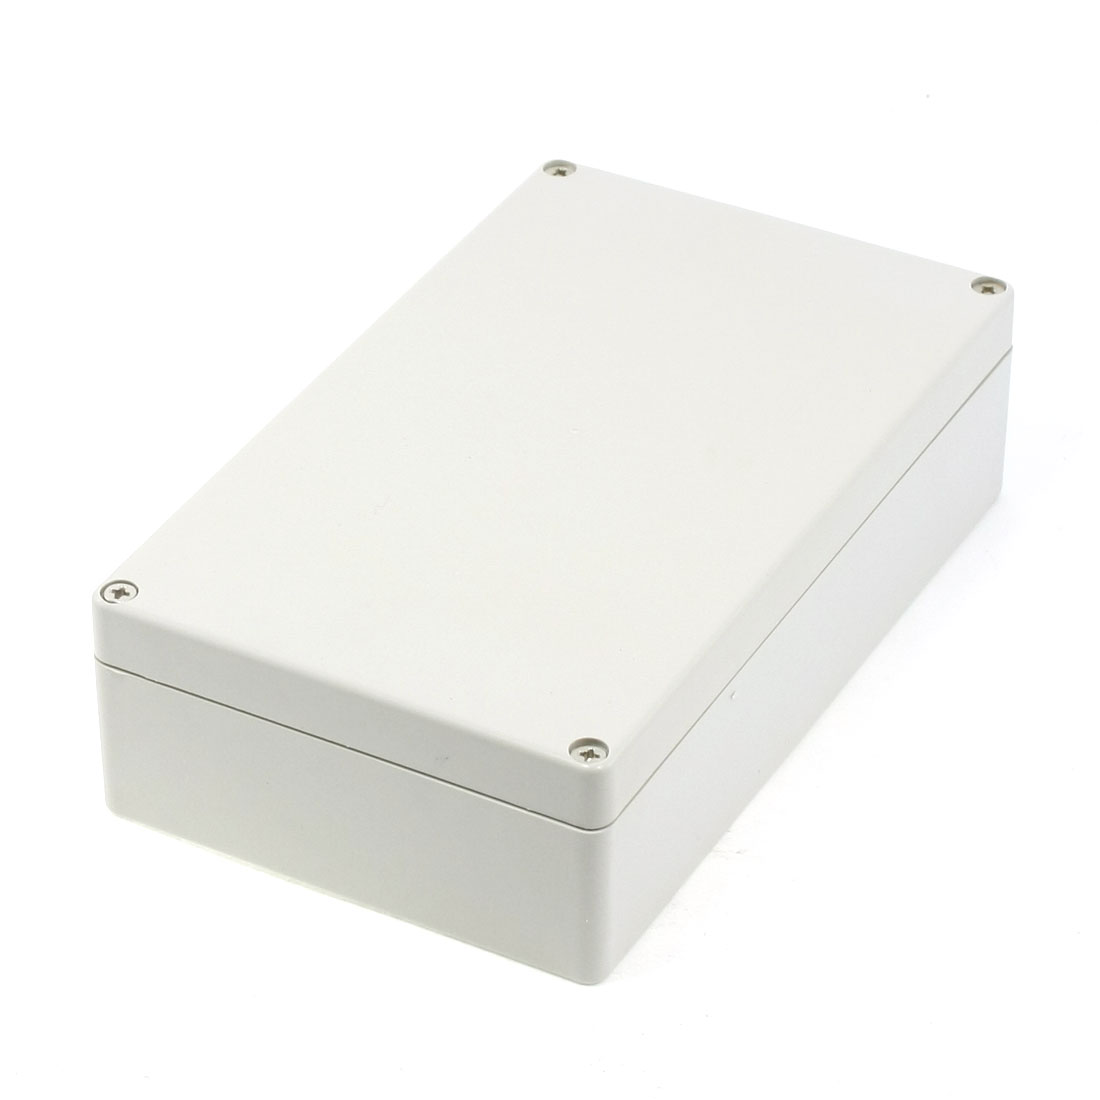 200mm-x-120mm-x-55mm-Waterproof-Plastic-Enclosure-Case-DIY-Junction-Box